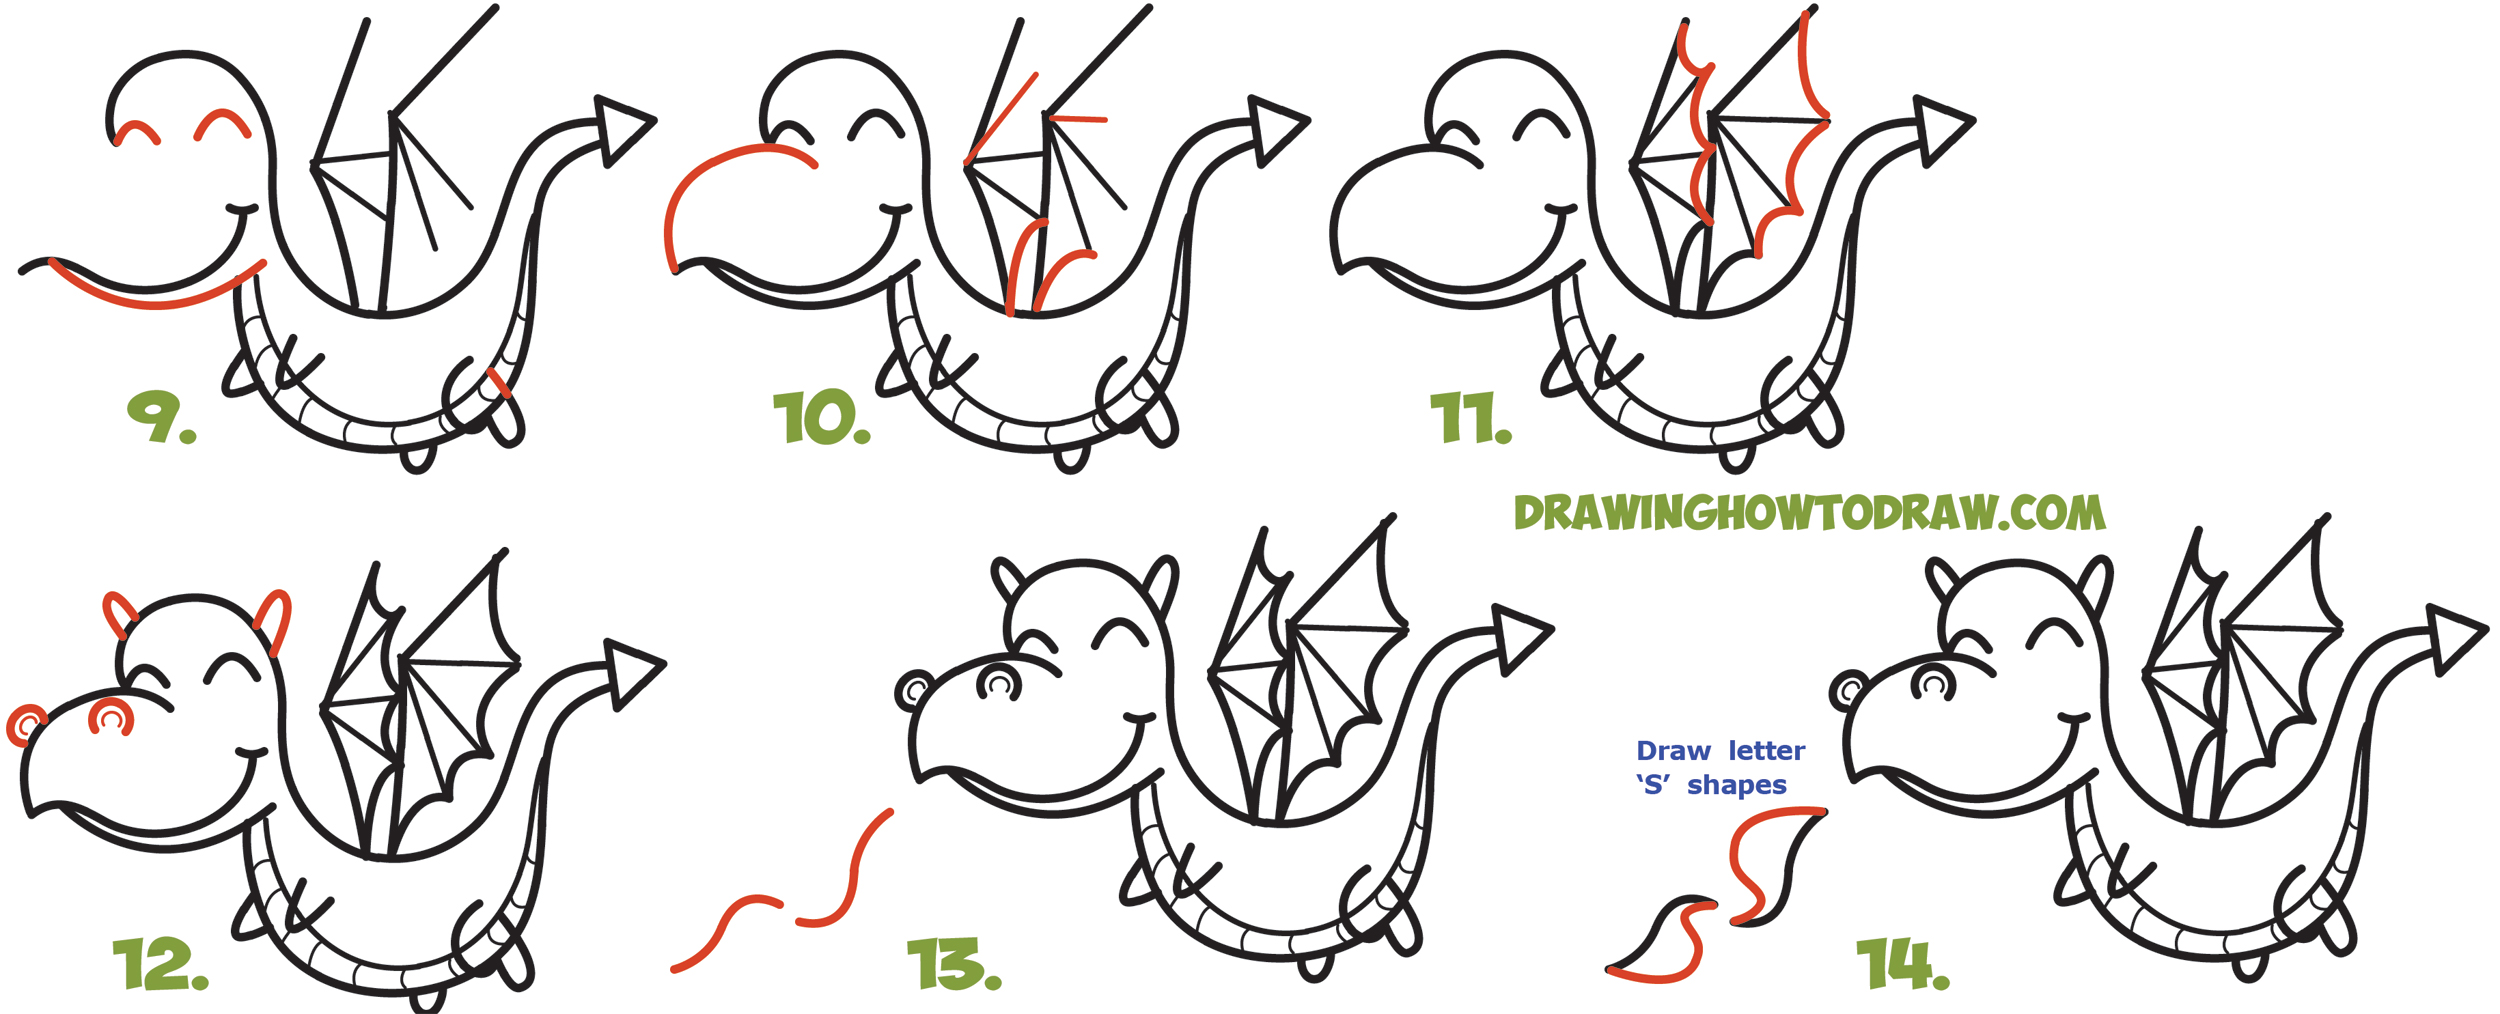 How To Draw A Cute Kawaii Chibi Dragon Shooting Fire With Easy